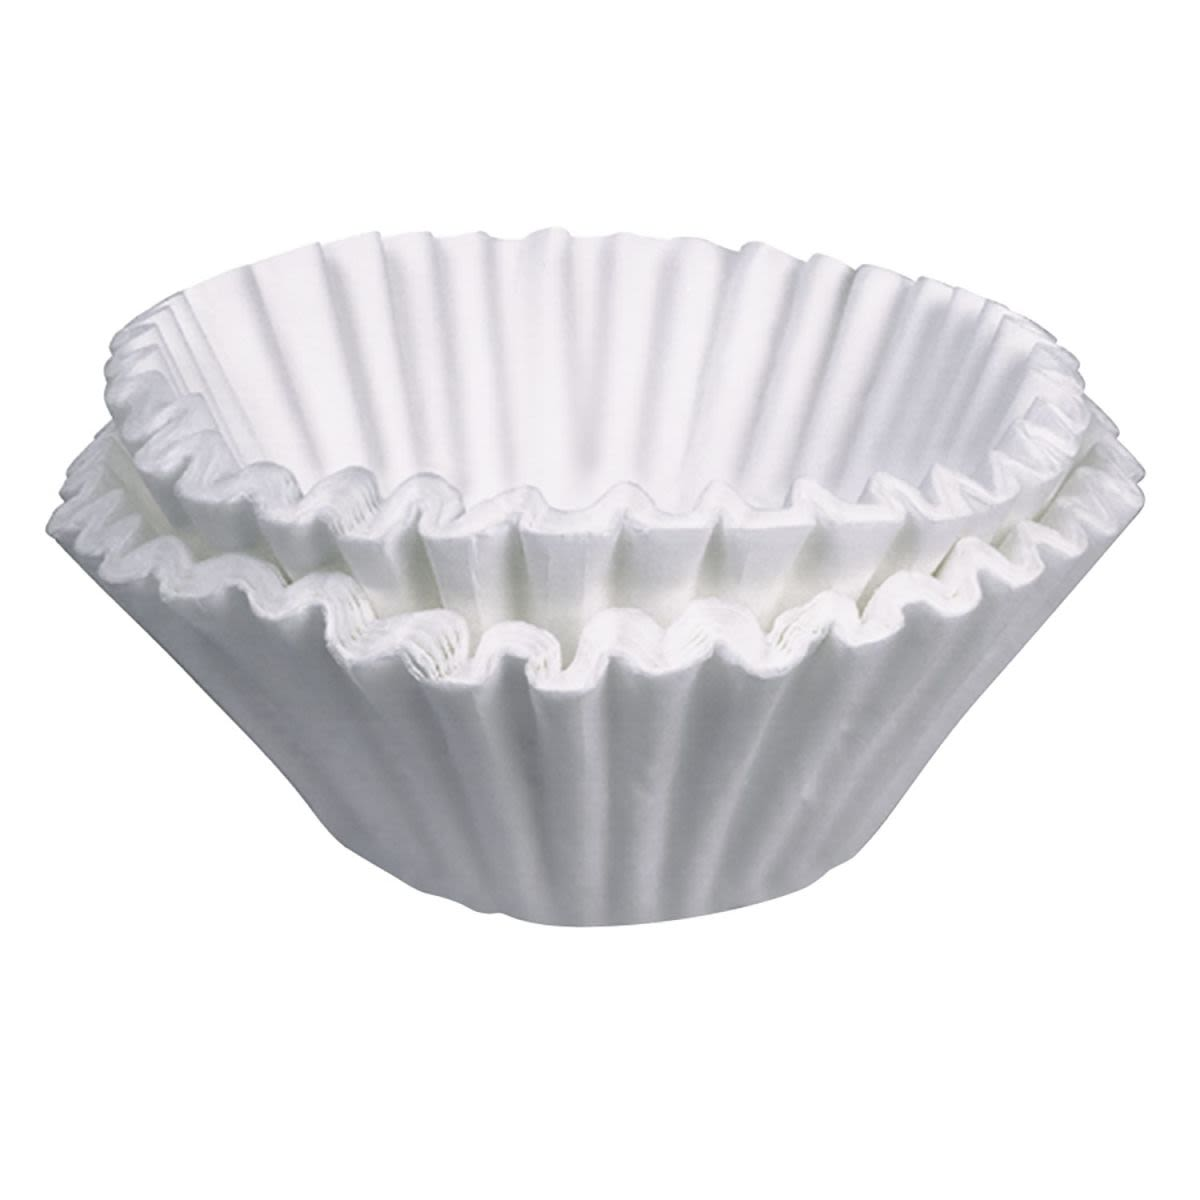 1000 count Coffee Filters